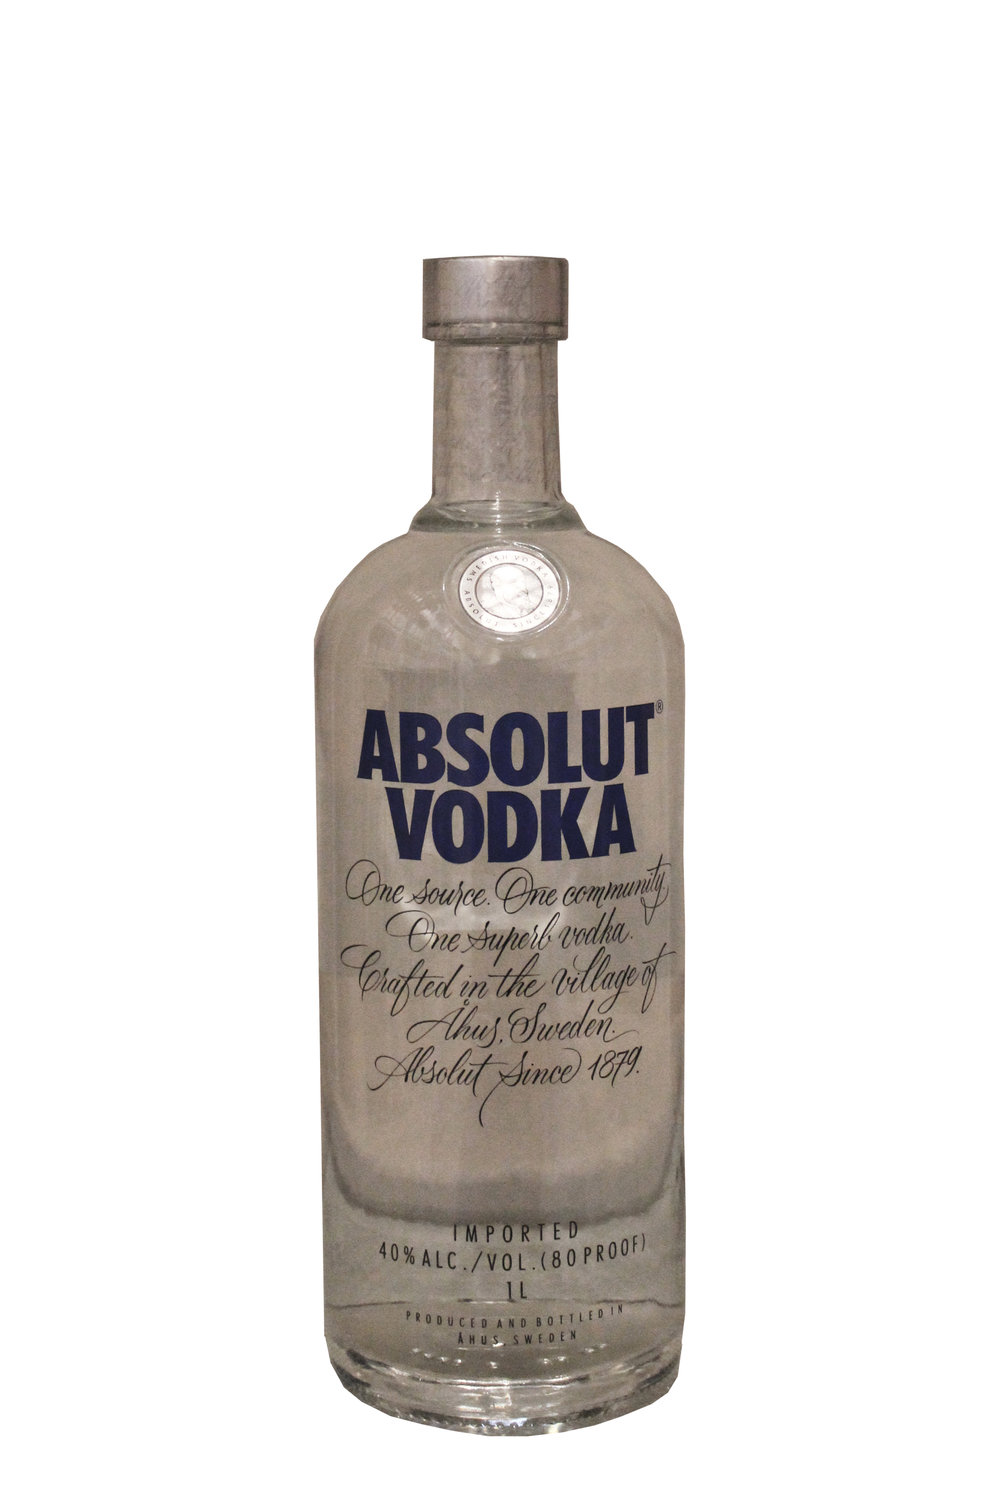 Premium Imported Vodka Absolut, Sweden